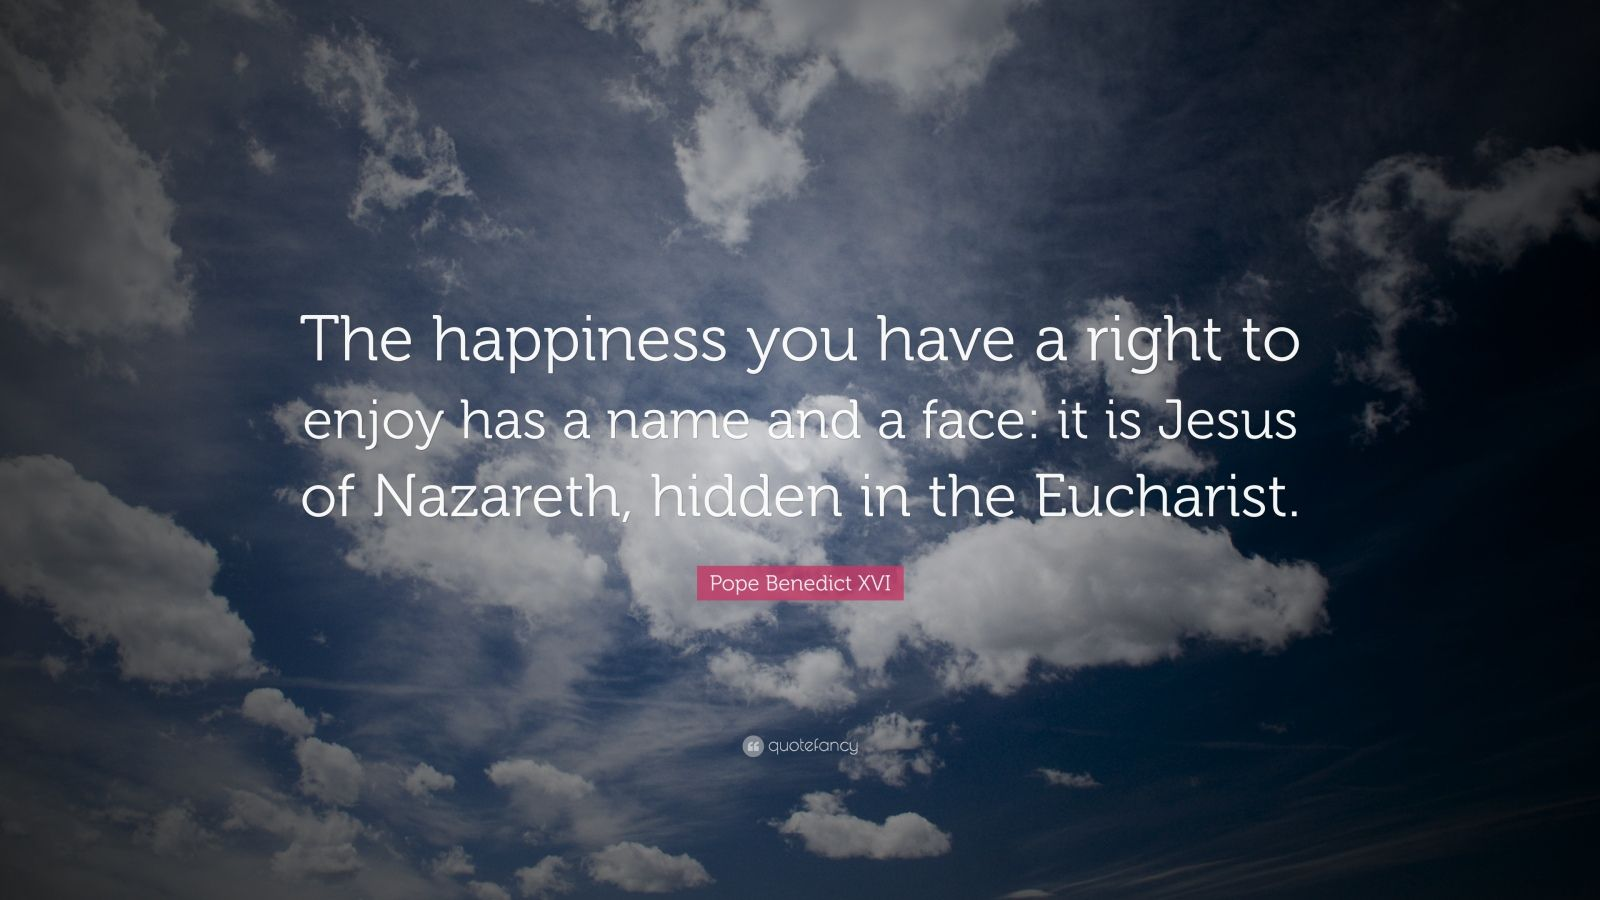 """Pope Benedict XVI Quote: """"The happiness you have a right to enjoy has a name and a face: it is Jesus of Nazareth, hidden in the Eucharist."""""""